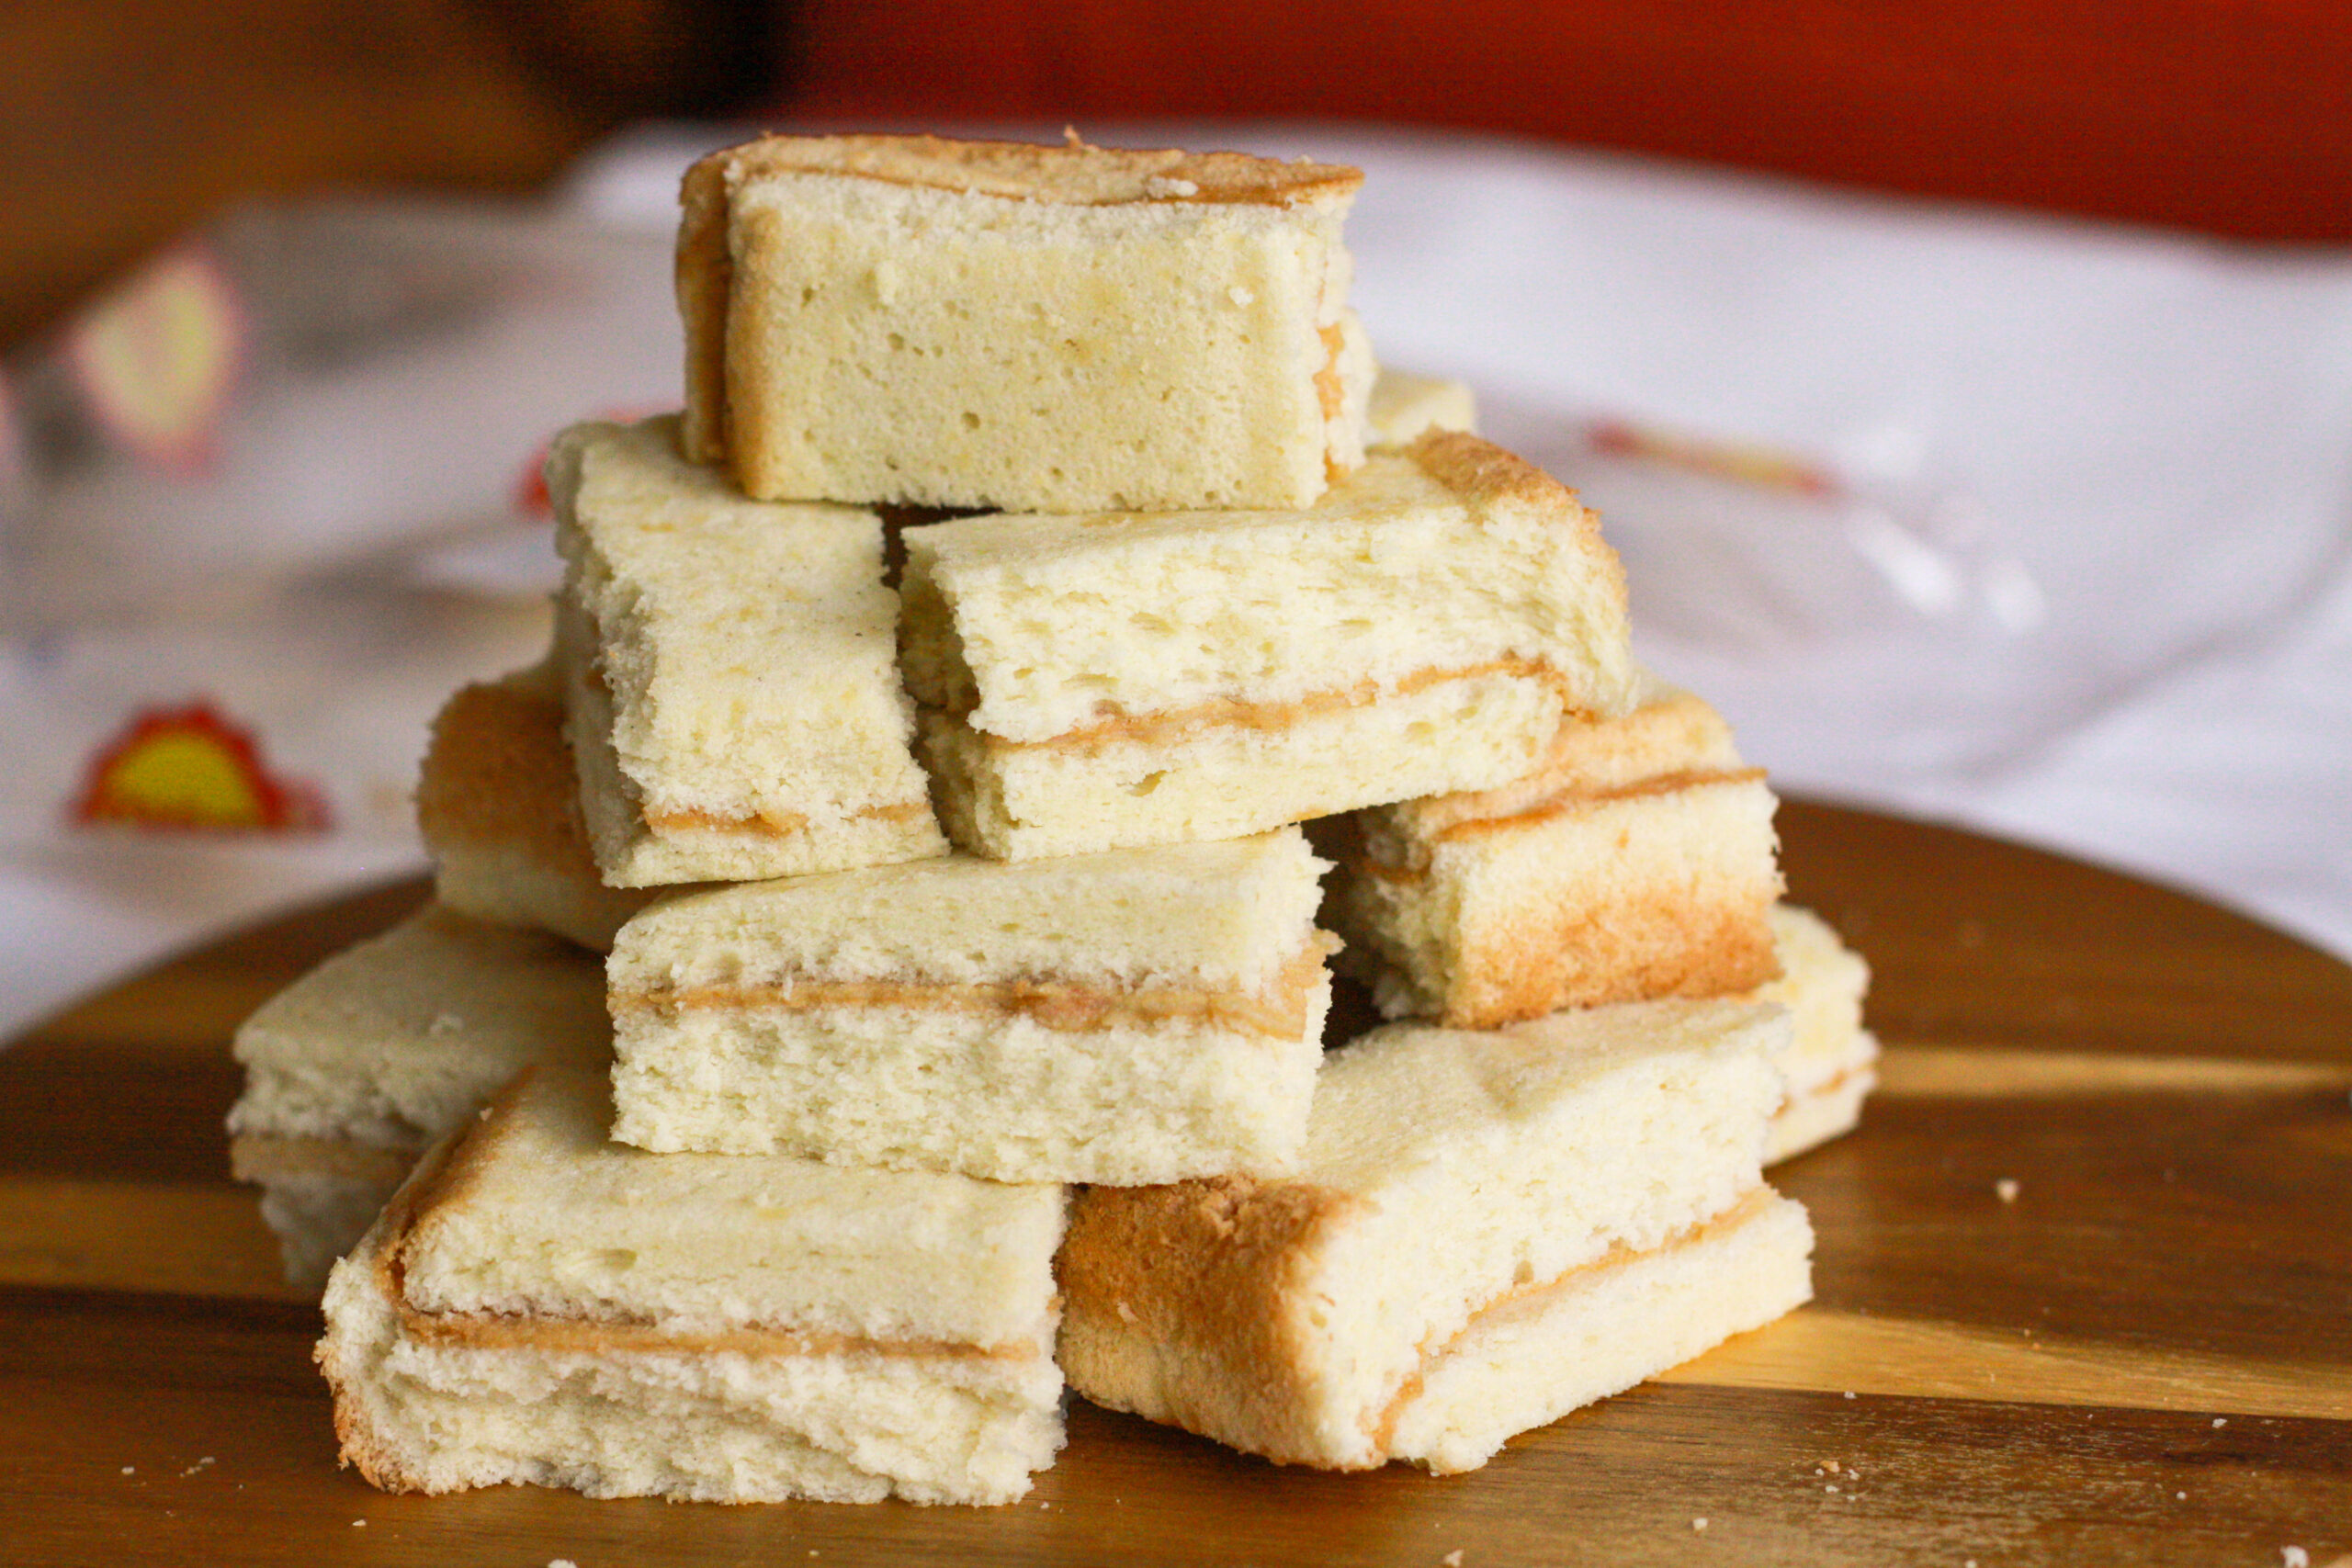 Pressed Sandwich Cake - Inipit from Pies Basket